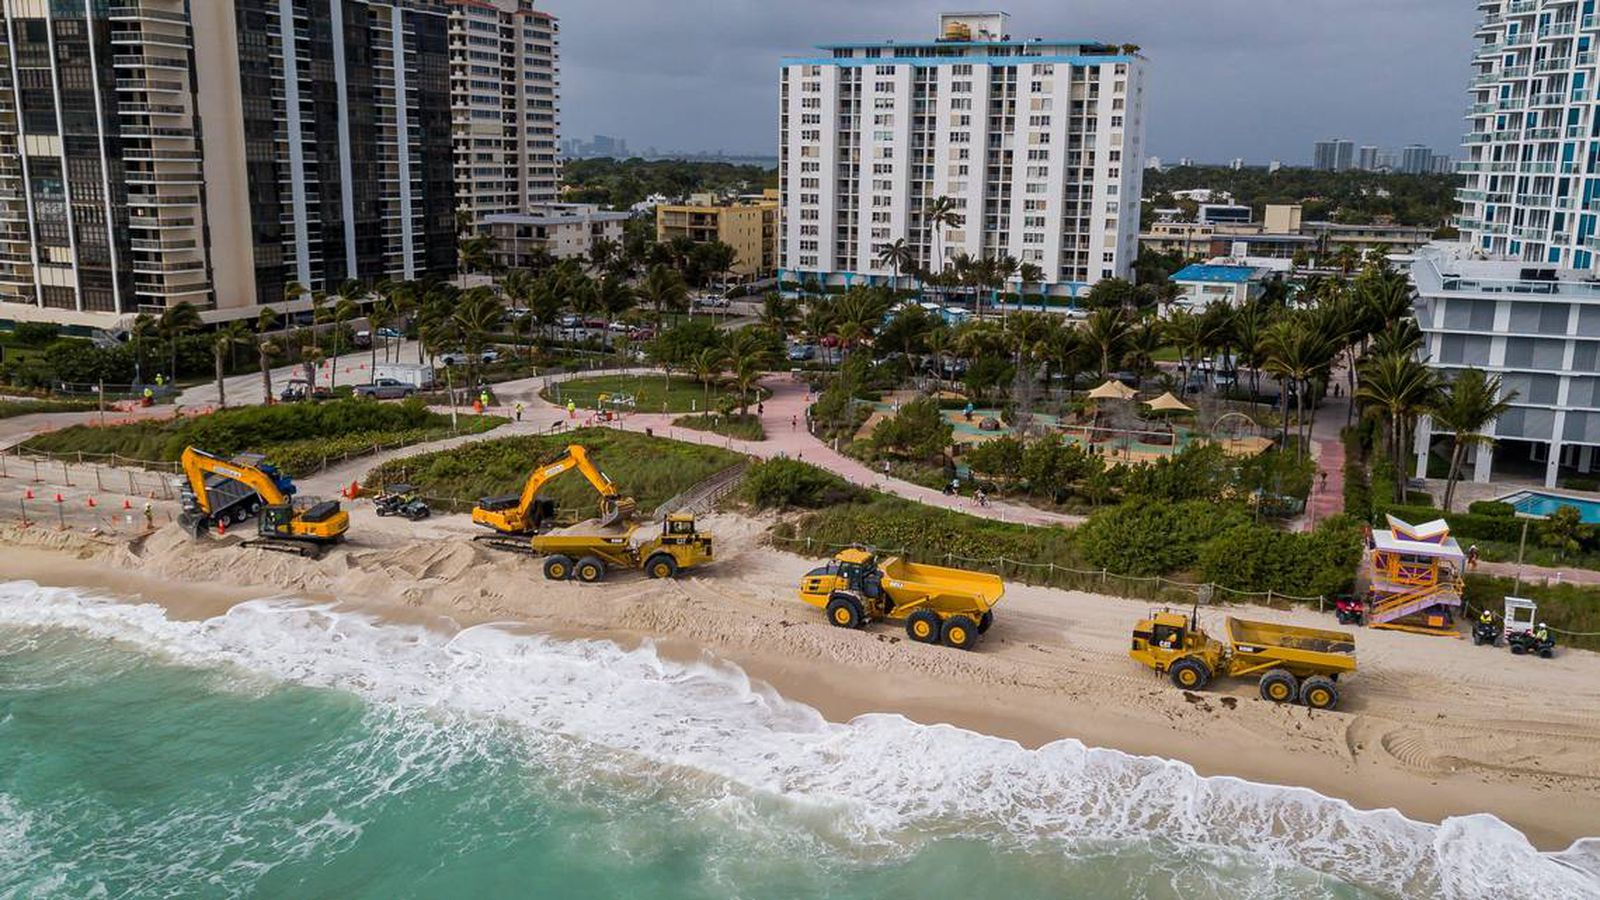 The U.S. Army Corps of Engineers dumps new sand from Central Florida along the Miami Beach shoreline near 65th Collins Avenue on Monday.